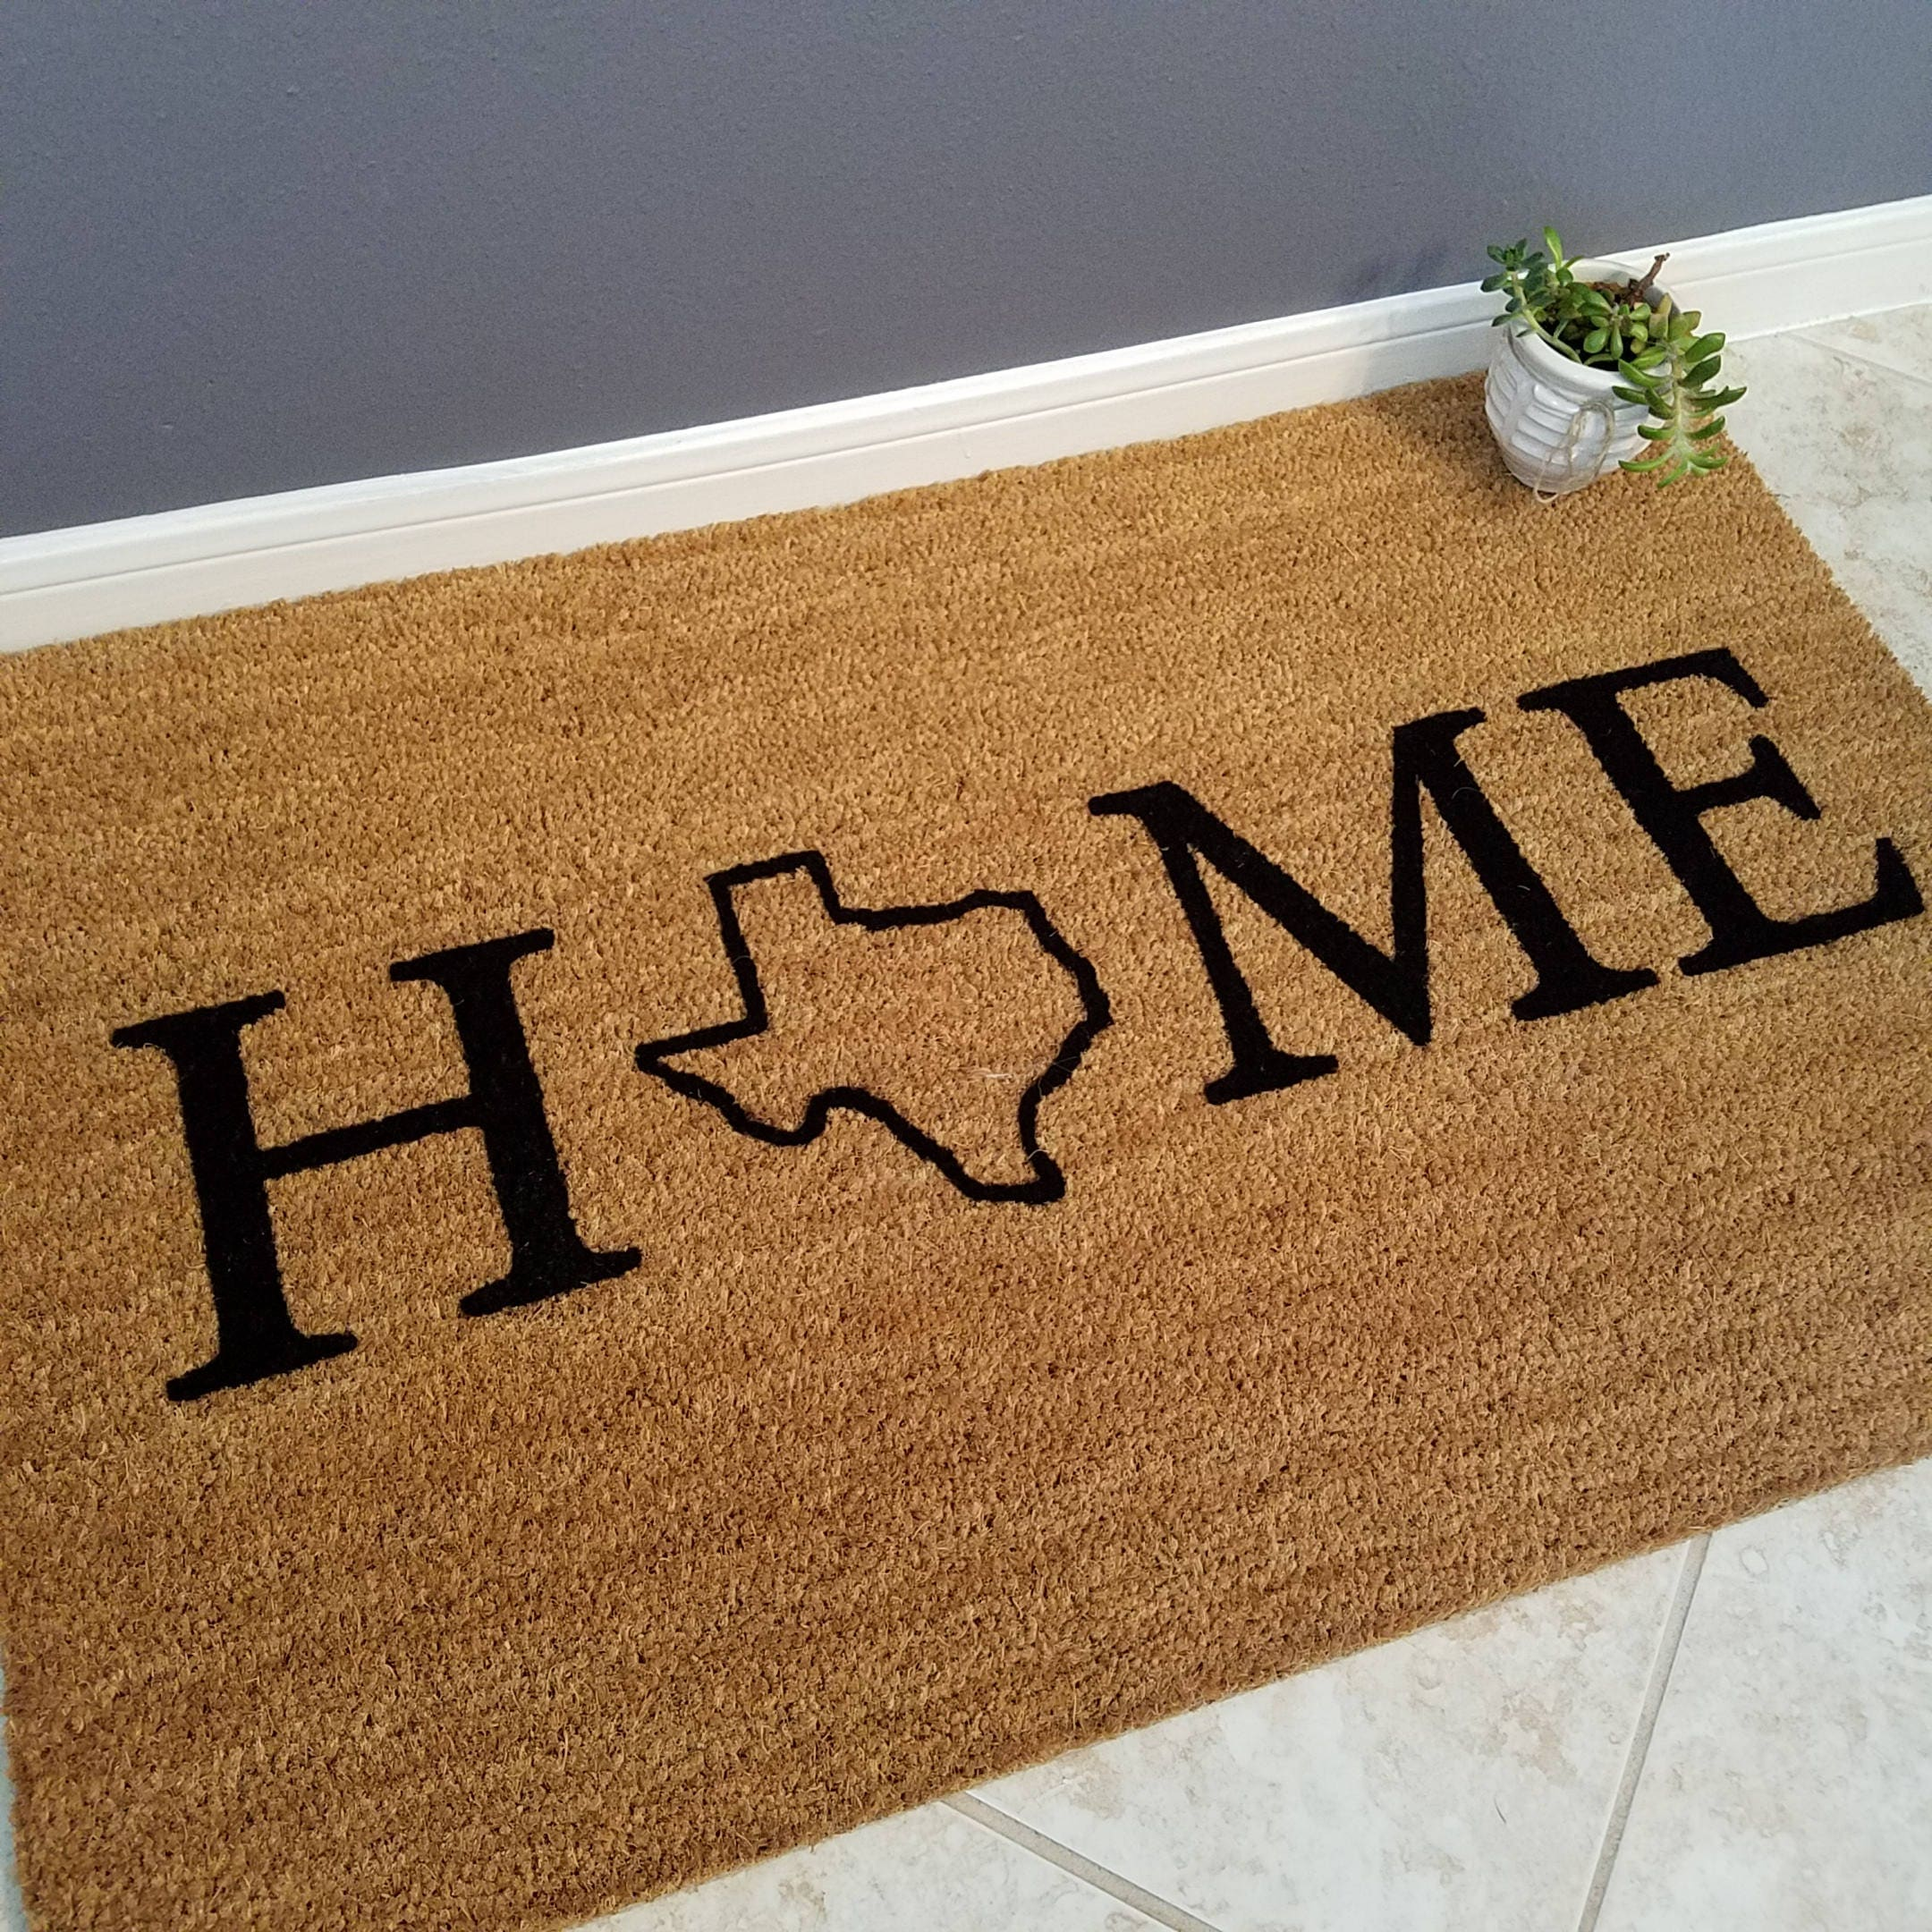 What Is A Good Housewarming Gift Personalized Doormat Door Mats Welcome Mat Custom